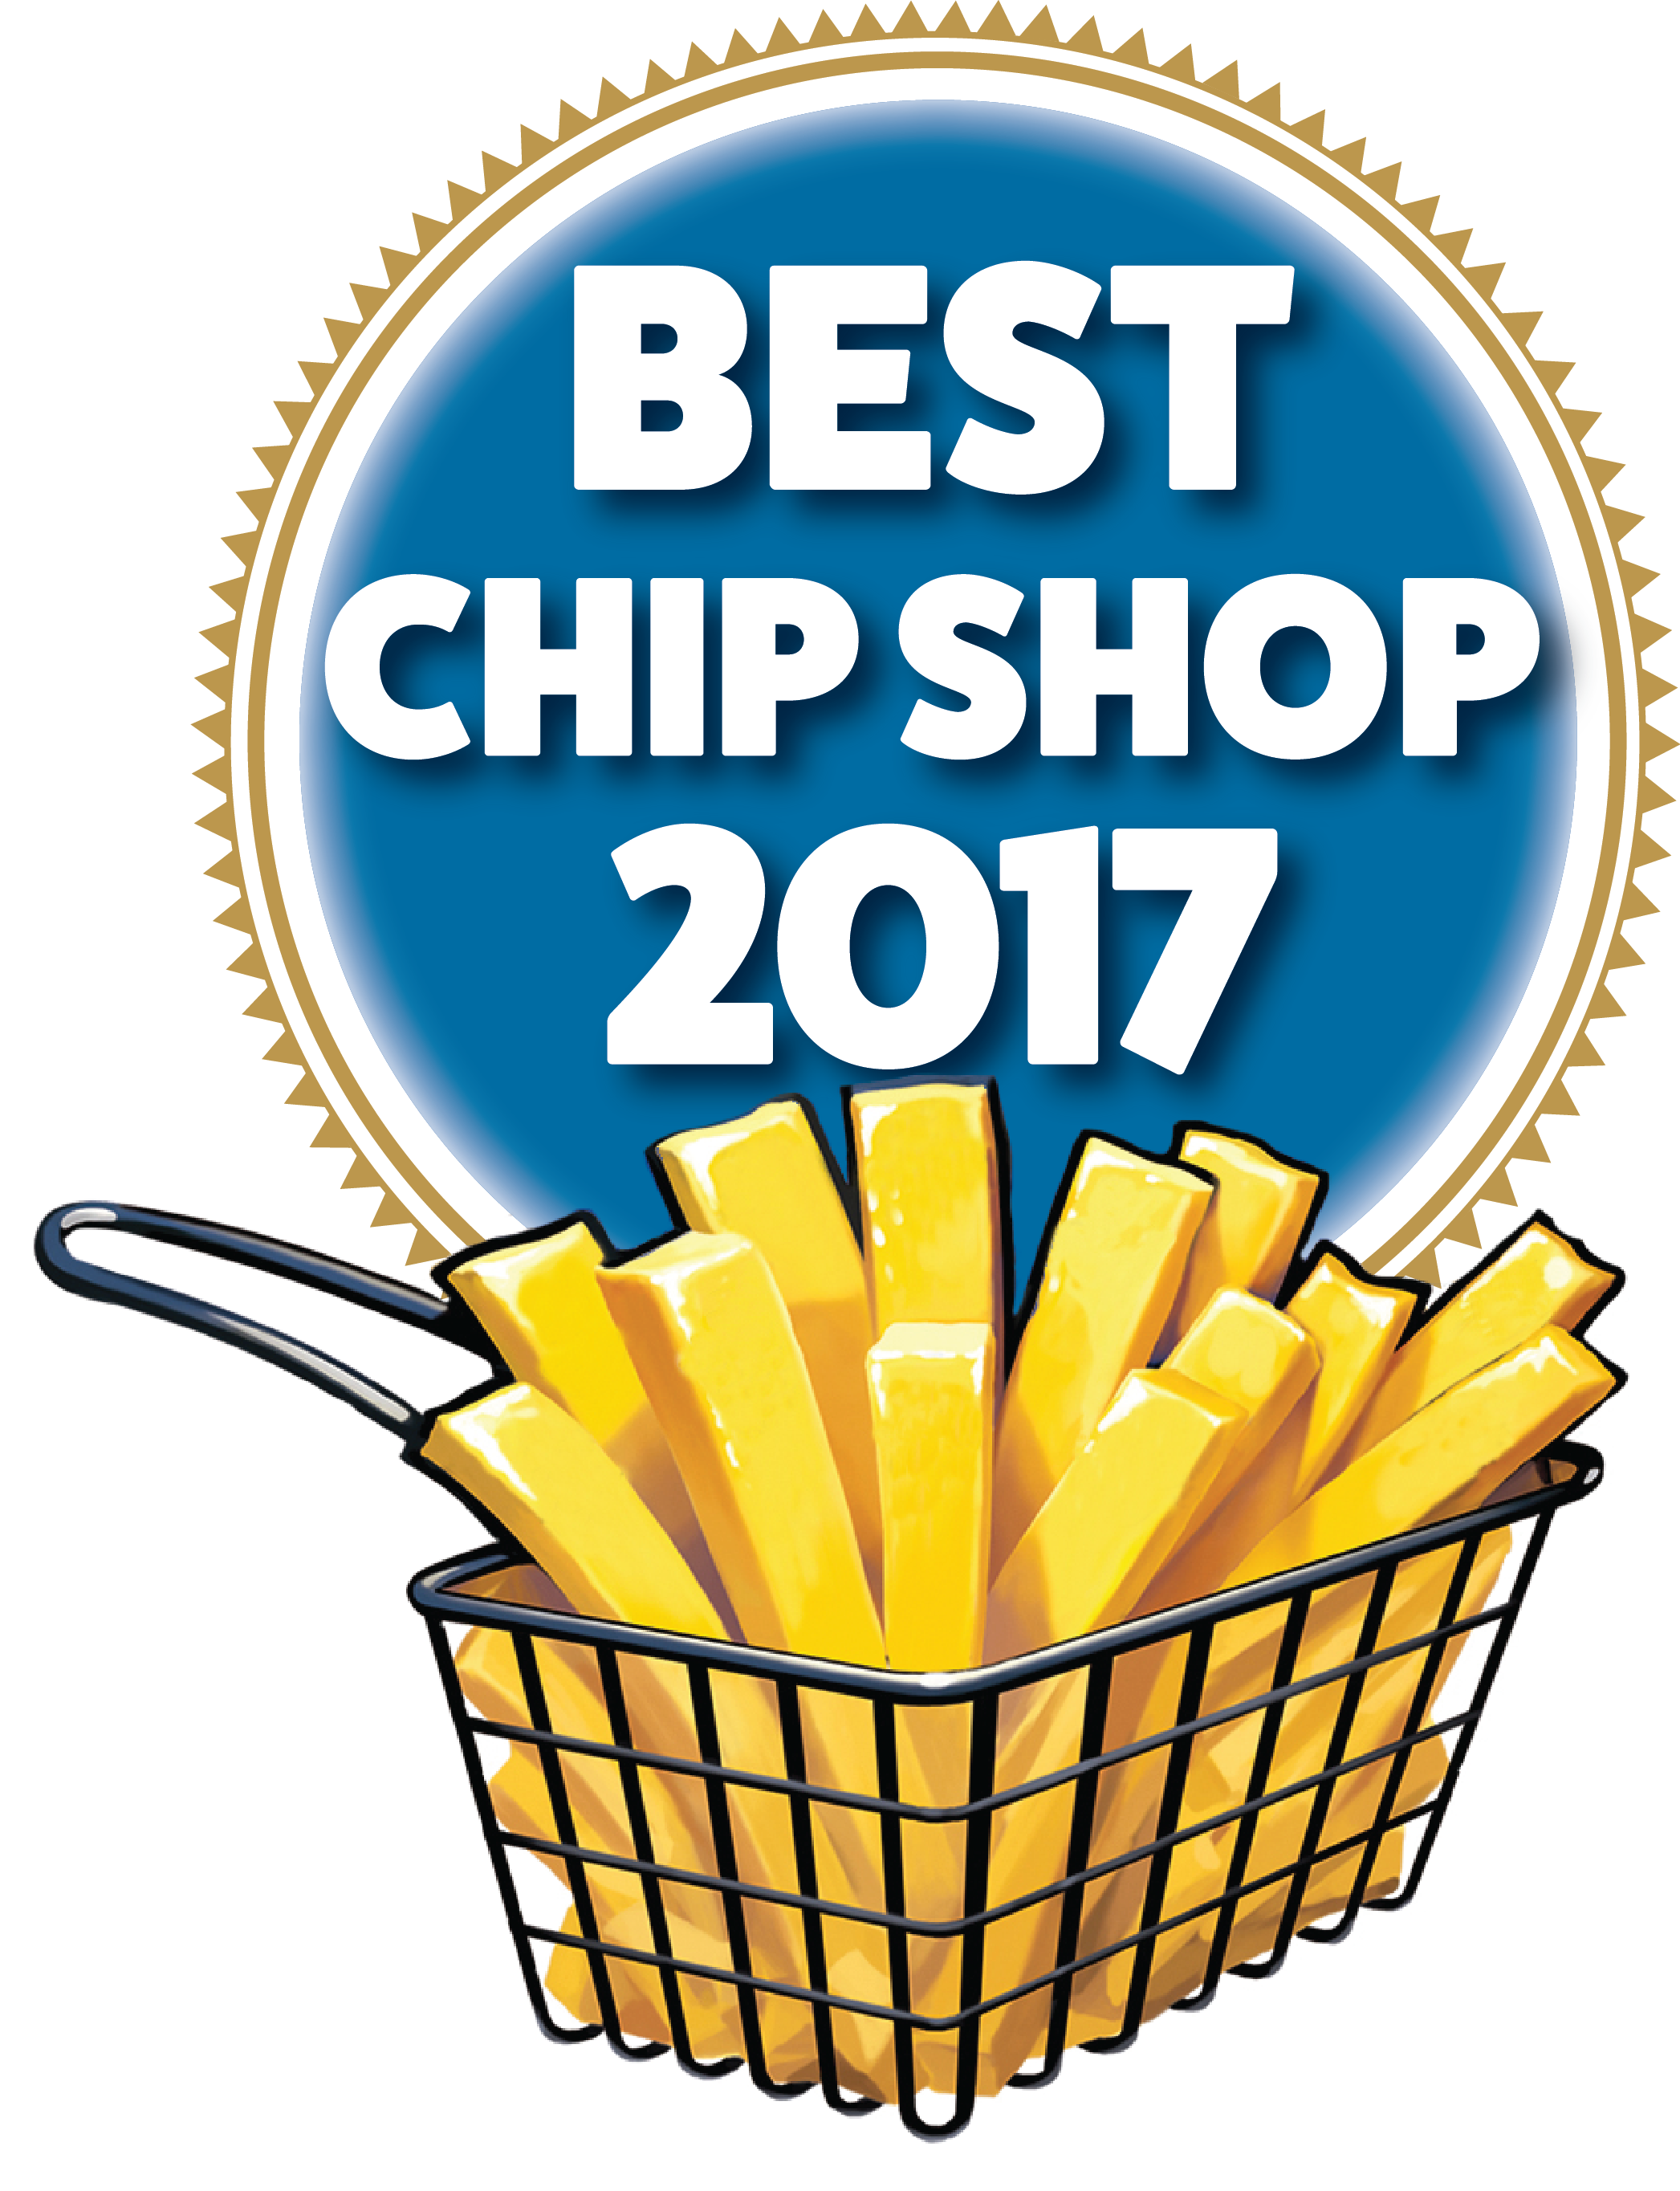 About the chip group. Competition clipart transparent